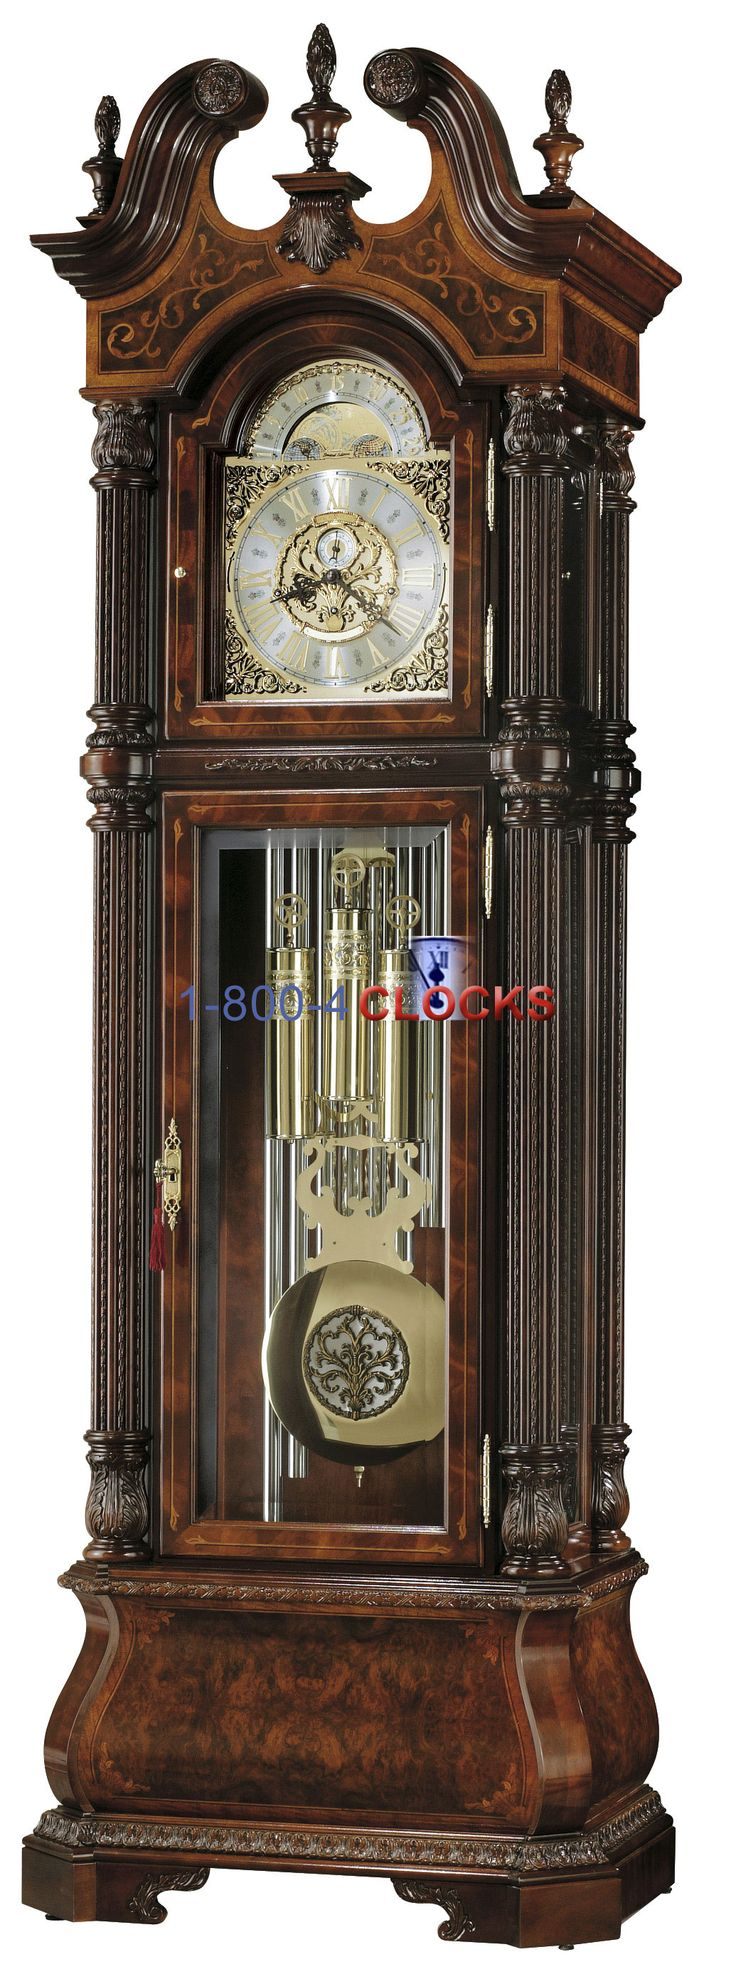 best clocks images on pinterest  grandfather clocks antique  - howard miller grandfather clocks  a review and history